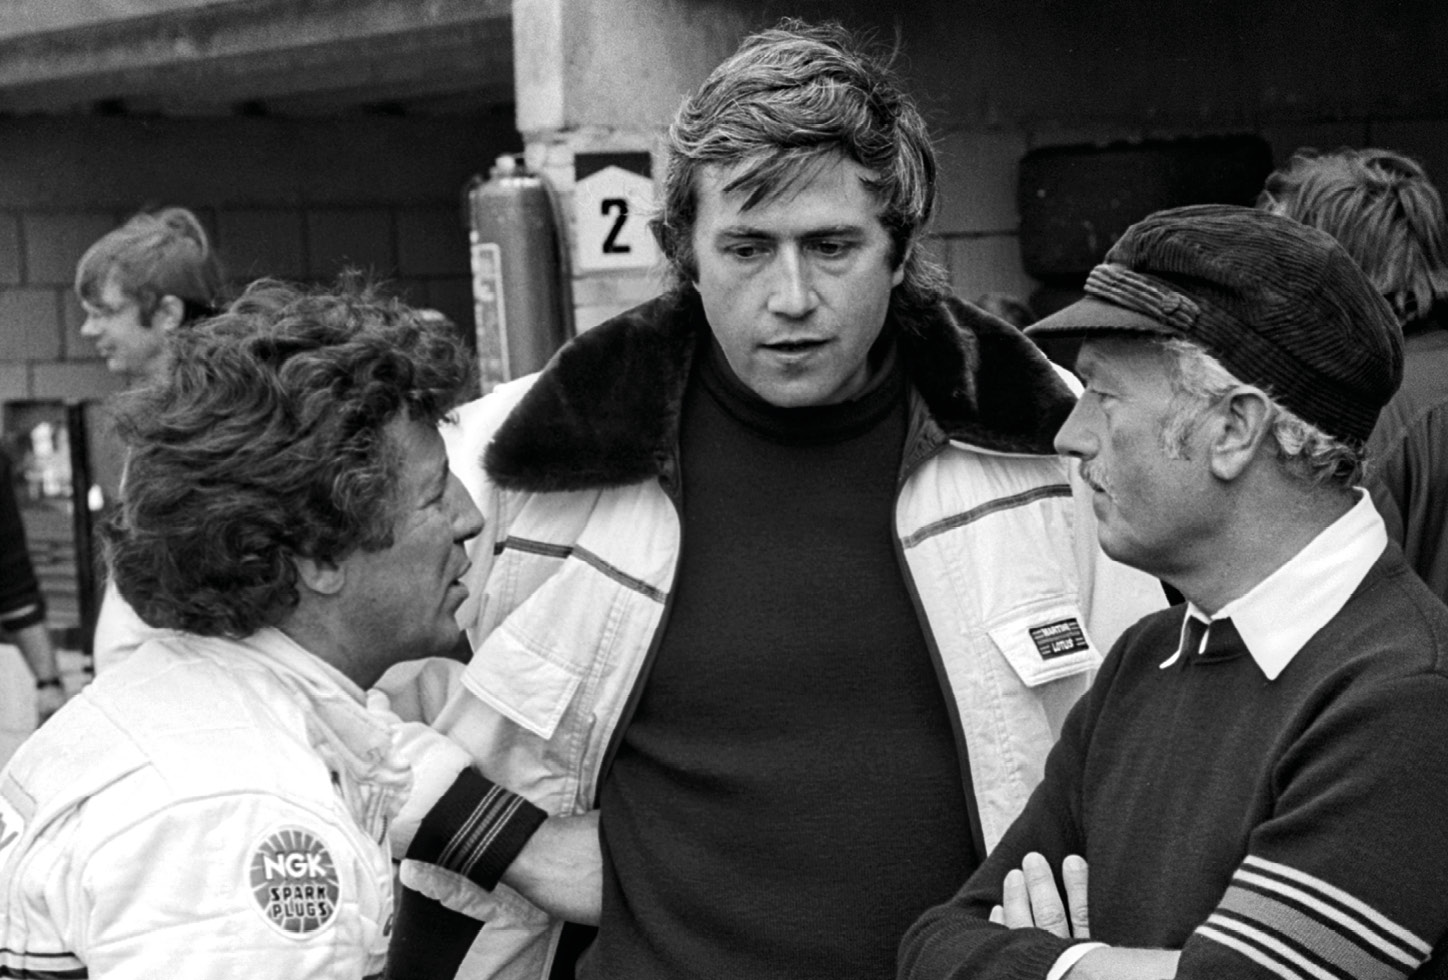 Andretti and Chapman in discussion with aerodynamic expert Peter Wright